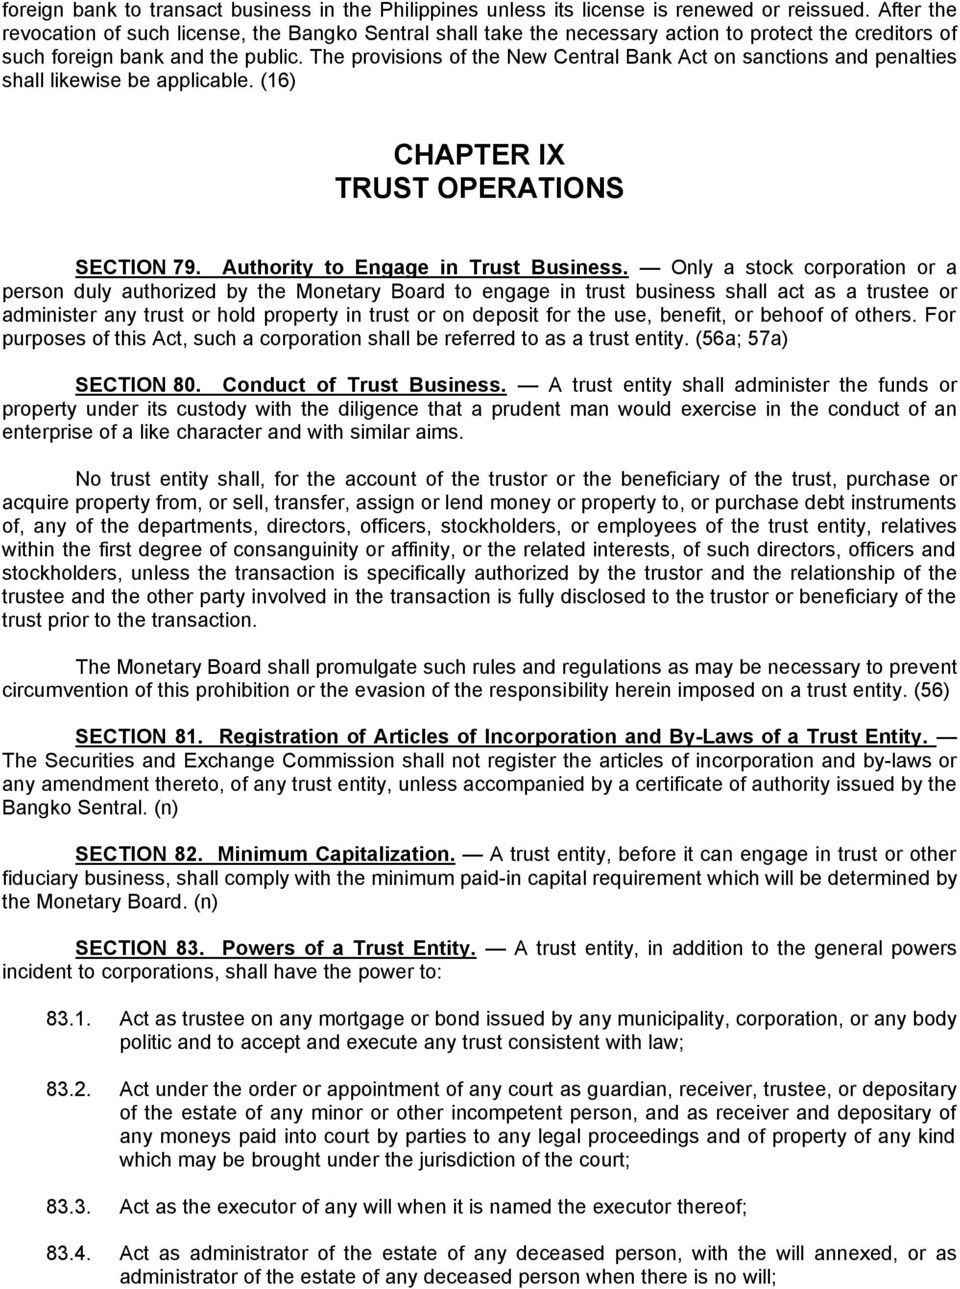 The provisions of the New Central Bank Act on sanctions and penalties shall likewise be applicable. (16) CHAPTER IX TRUST OPERATIONS SECTION 79. Authority to Engage in Trust Business.